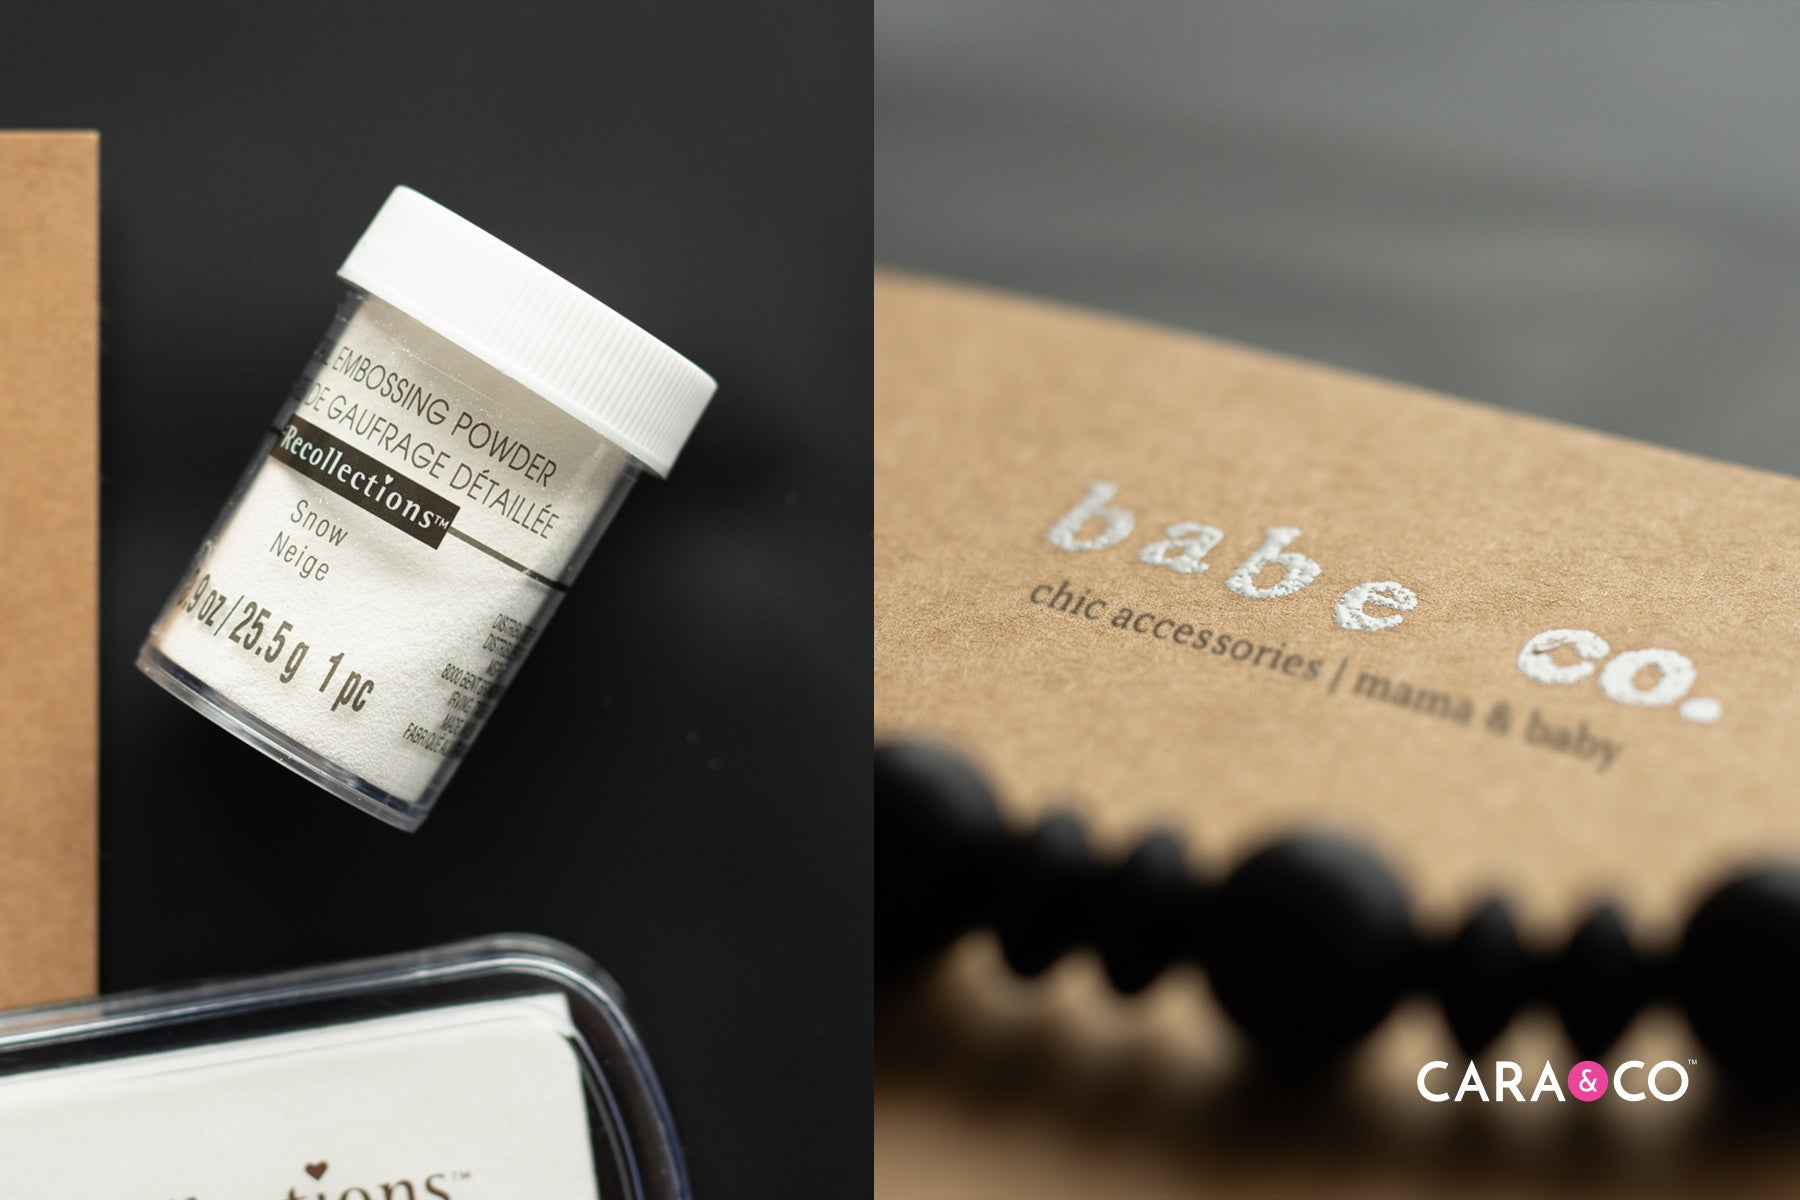 Packaging Hacks for your handmade business - Cara & Co Blog